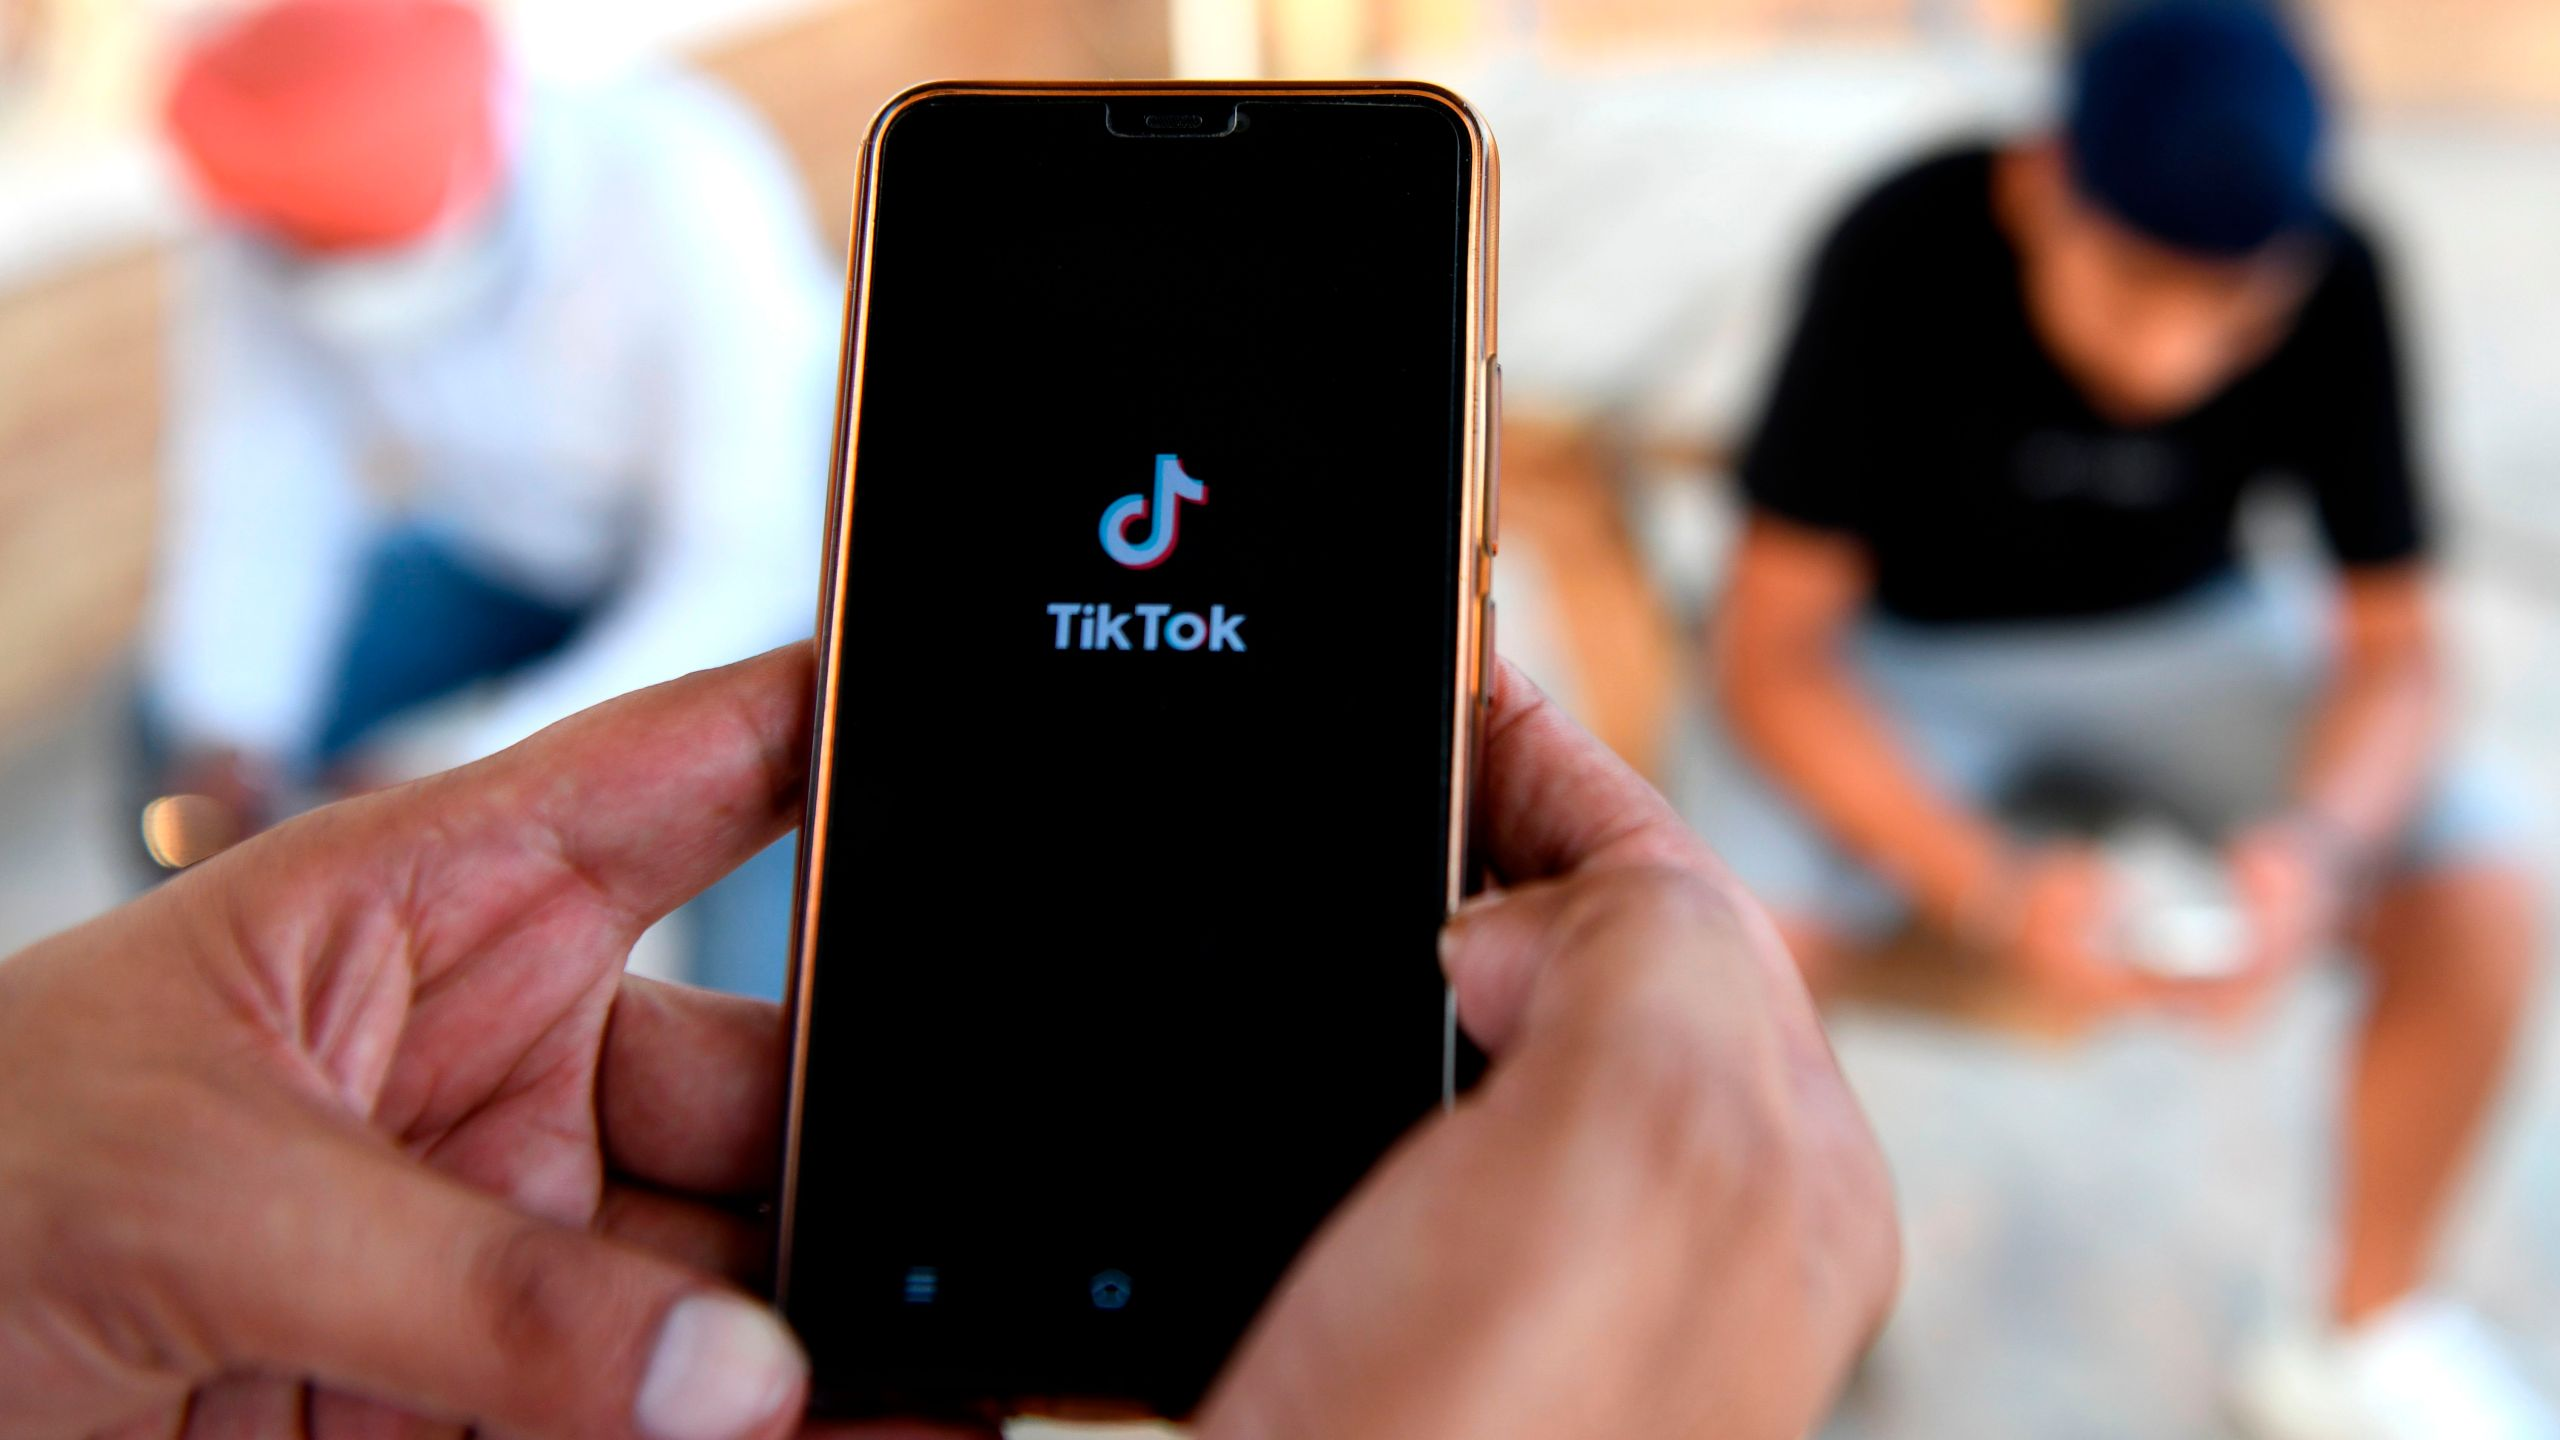 A person browses through the 'Tik Tok' app on a smartphones in Amritsar on June 30, 2020. (NARINDER NANU/AFP via Getty Images)